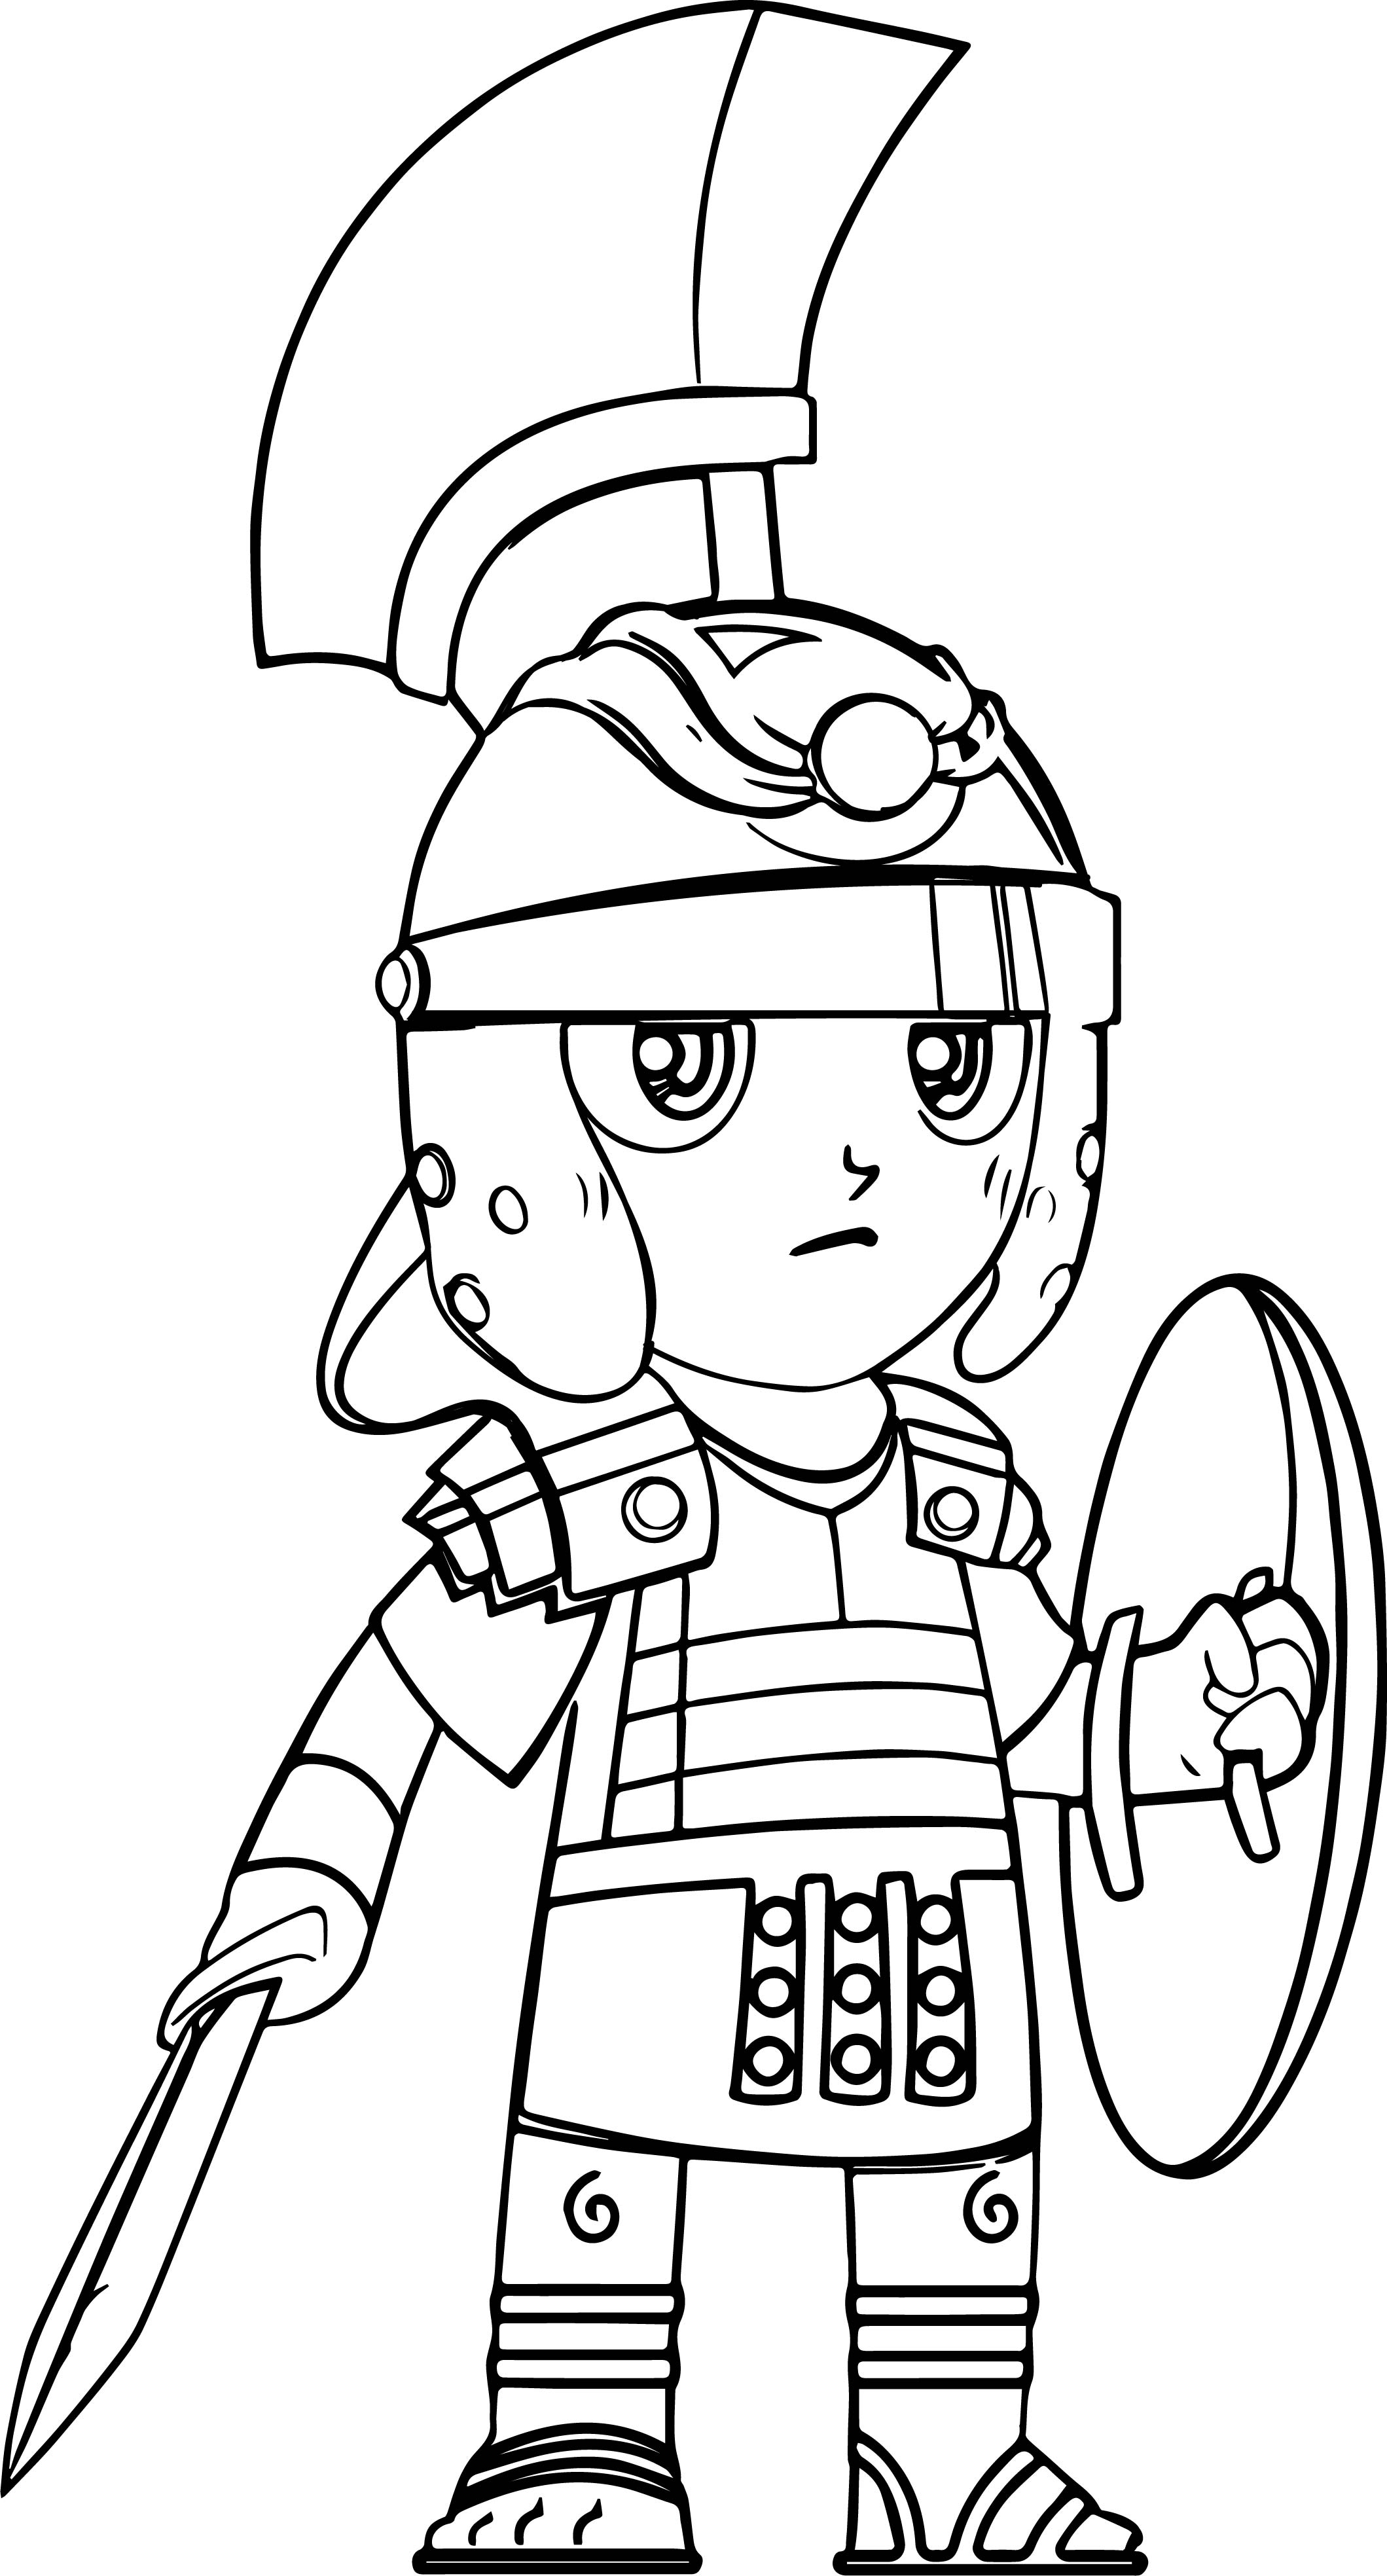 Roman Solr Coloring Pages